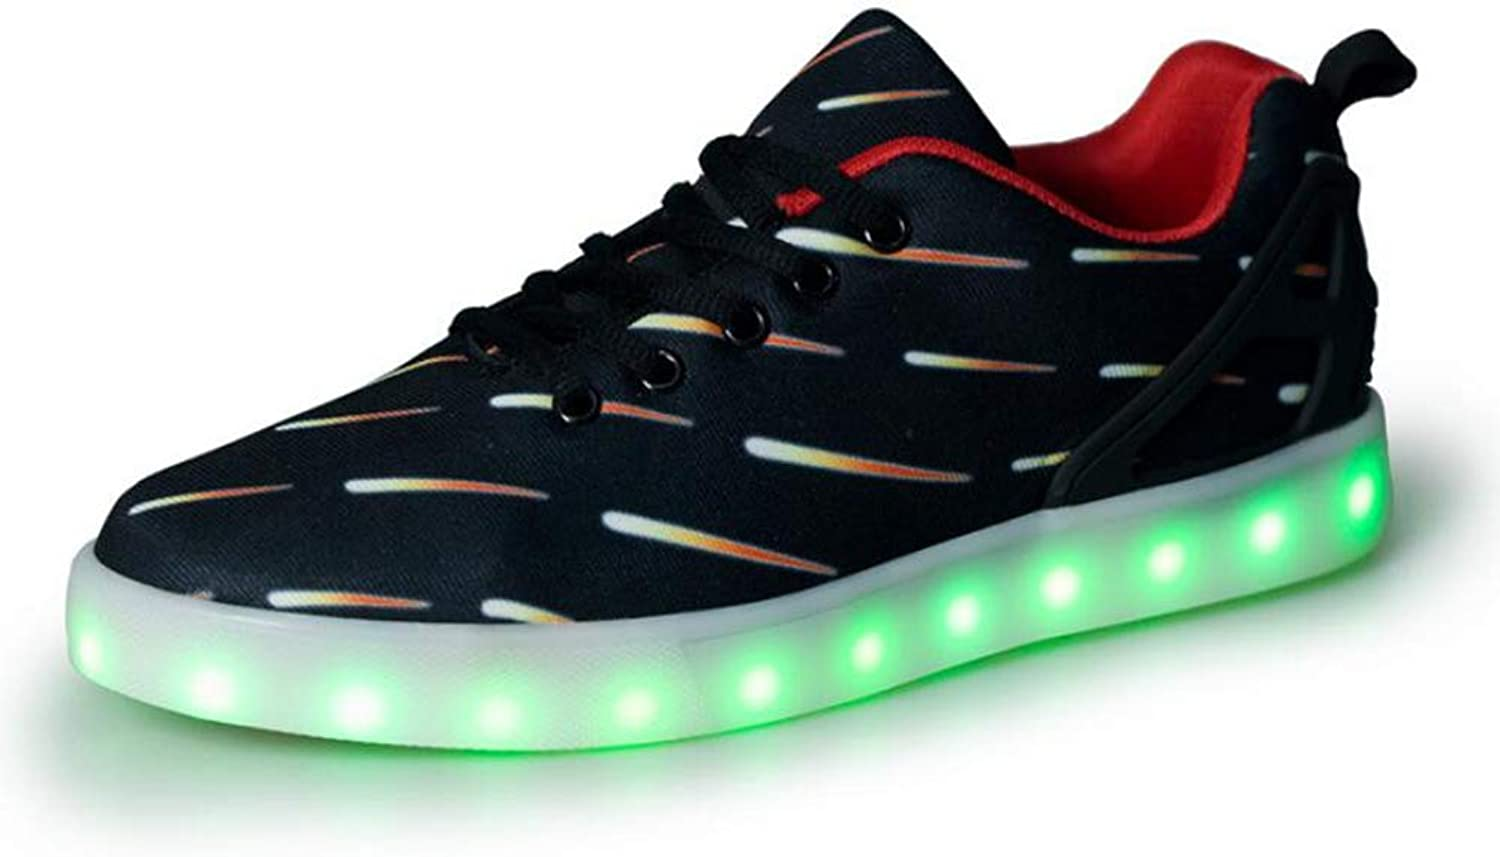 752959a4dfa MhC Unisex shoes Tulle Spring Comfort LED shoes Light Up shoes ...